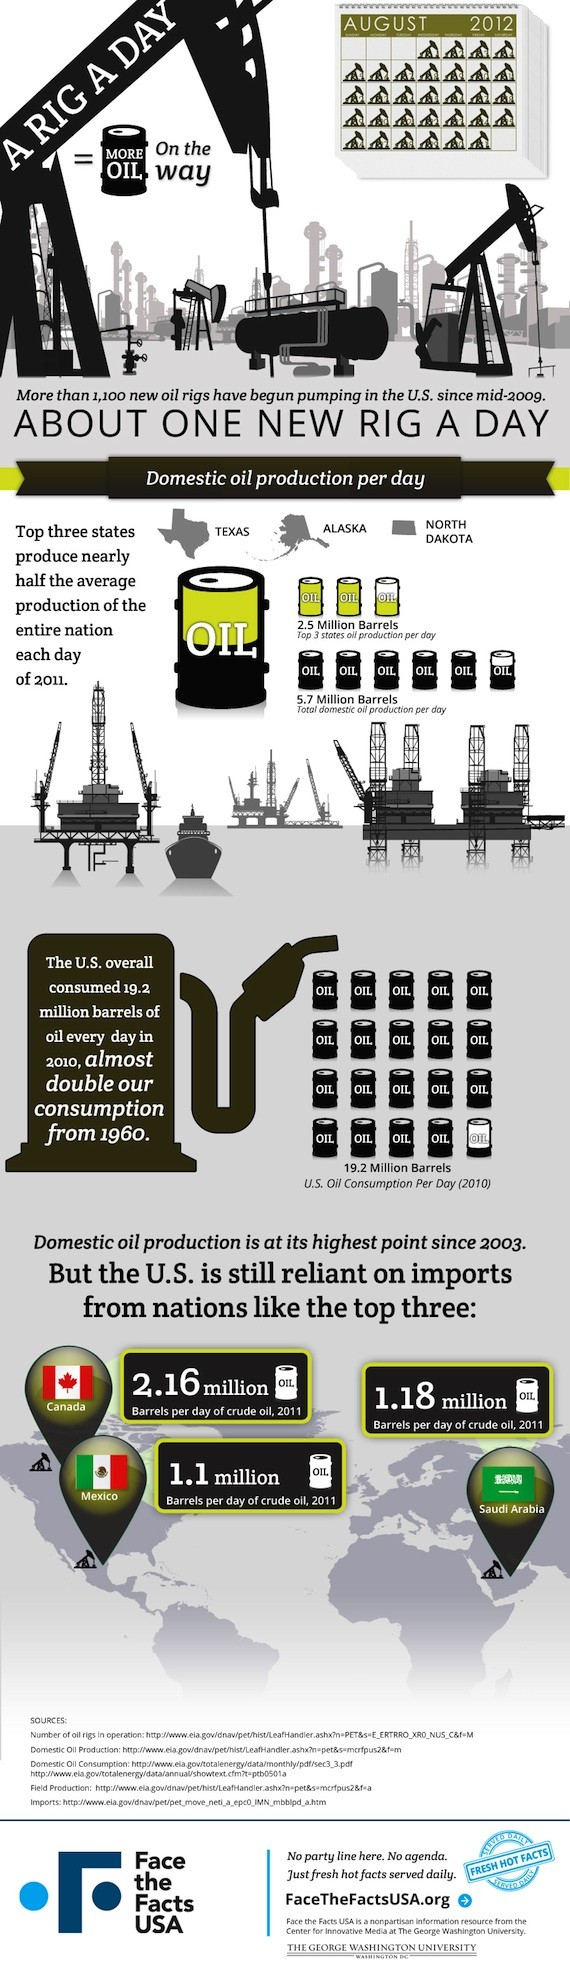 Domestic Oil Production